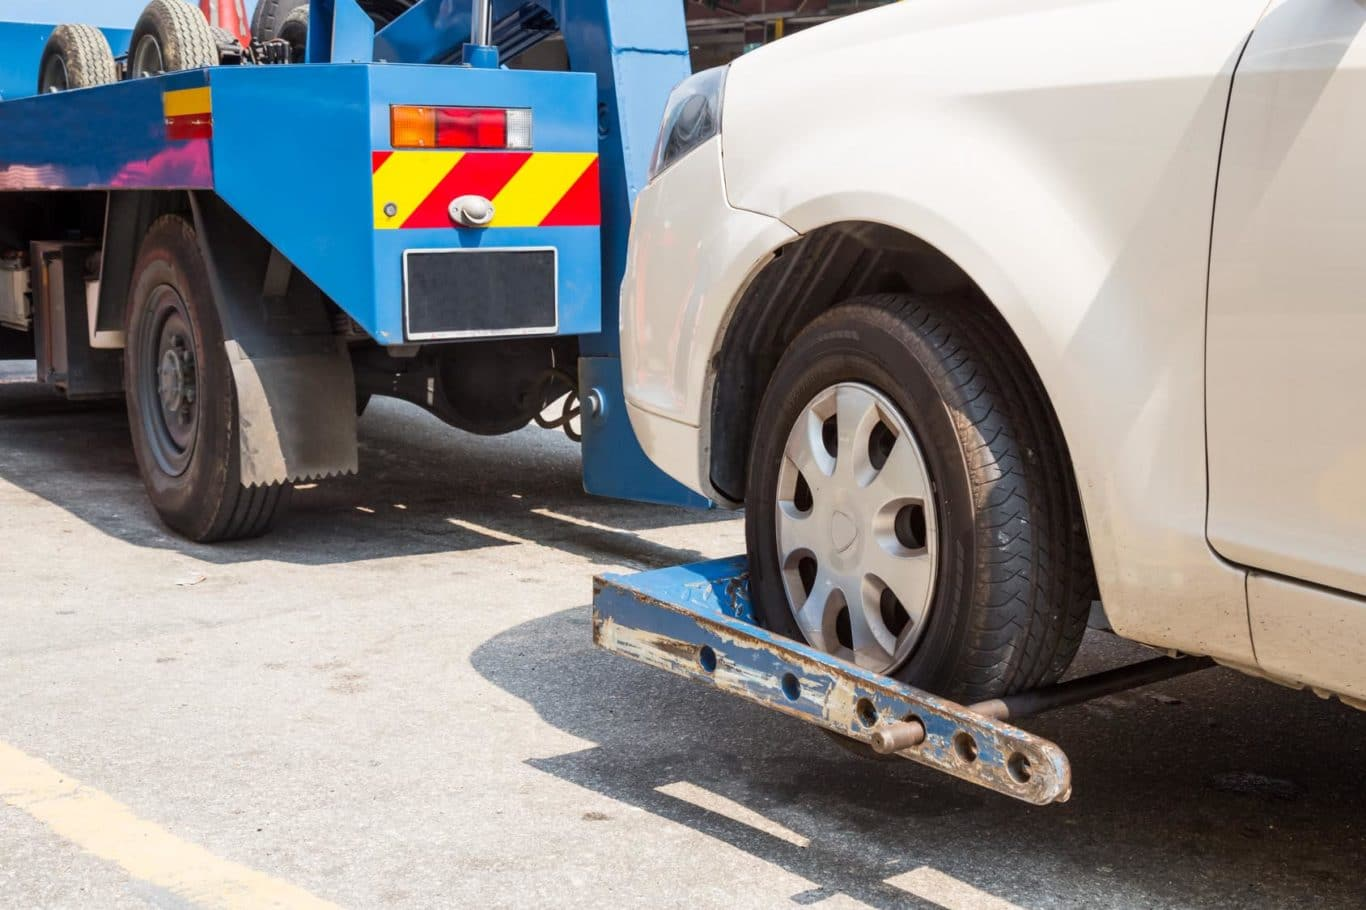 Carrickmines expert Car Recovery services